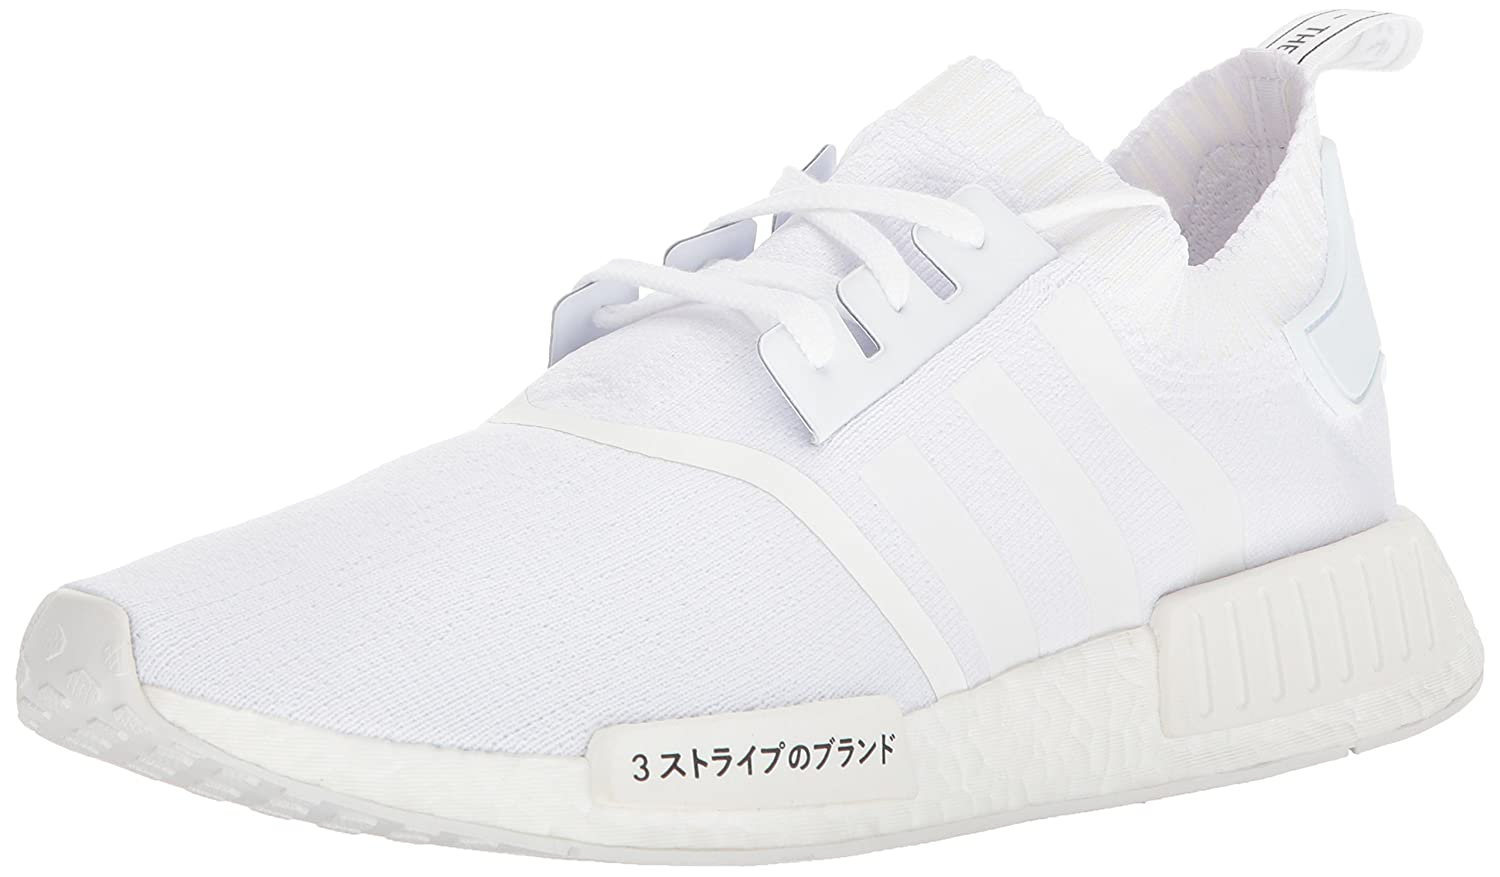 wholesale dealer c3ef7 50d16 Amazon.com  adidas Originals Mens NMD R1 Primeknit JPN Trainer US11.5  White  Road Running